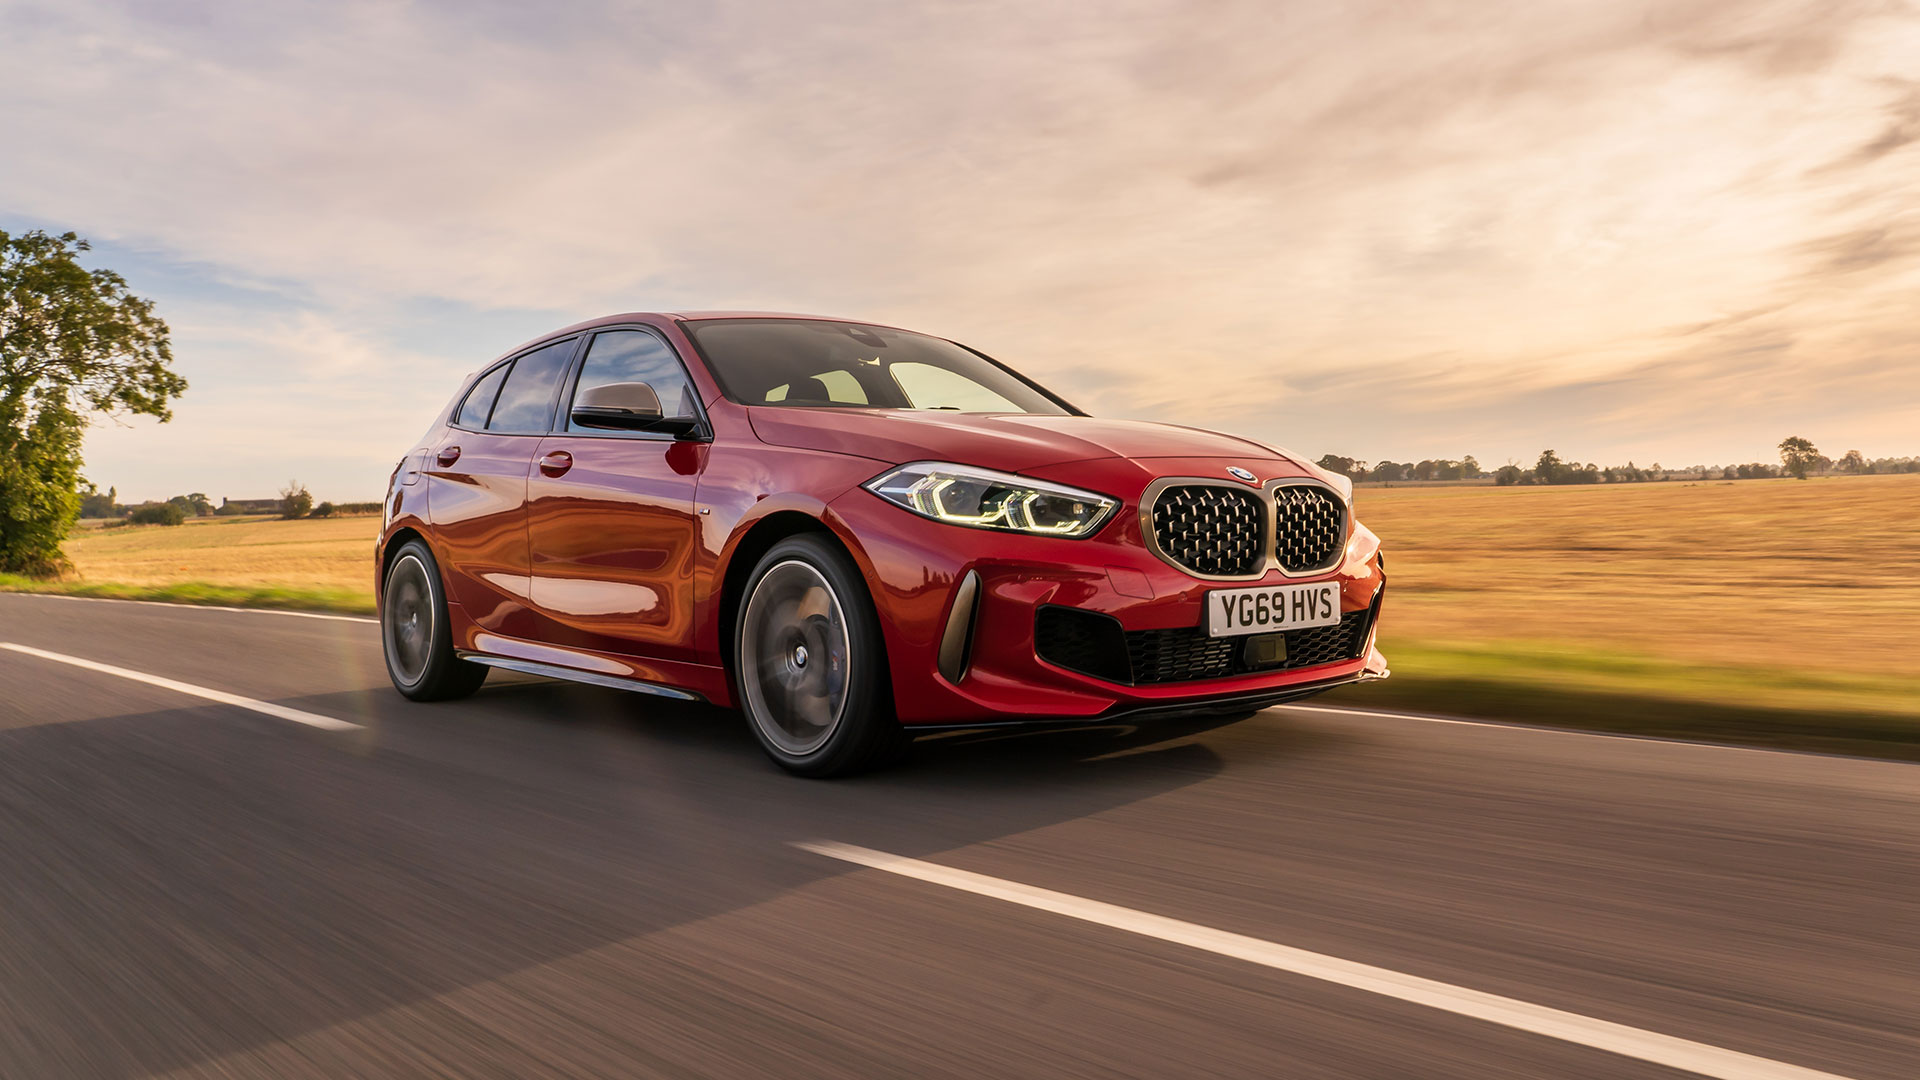 New Used Bmw 1 Series Cars For Sale On Auto Trader Uk